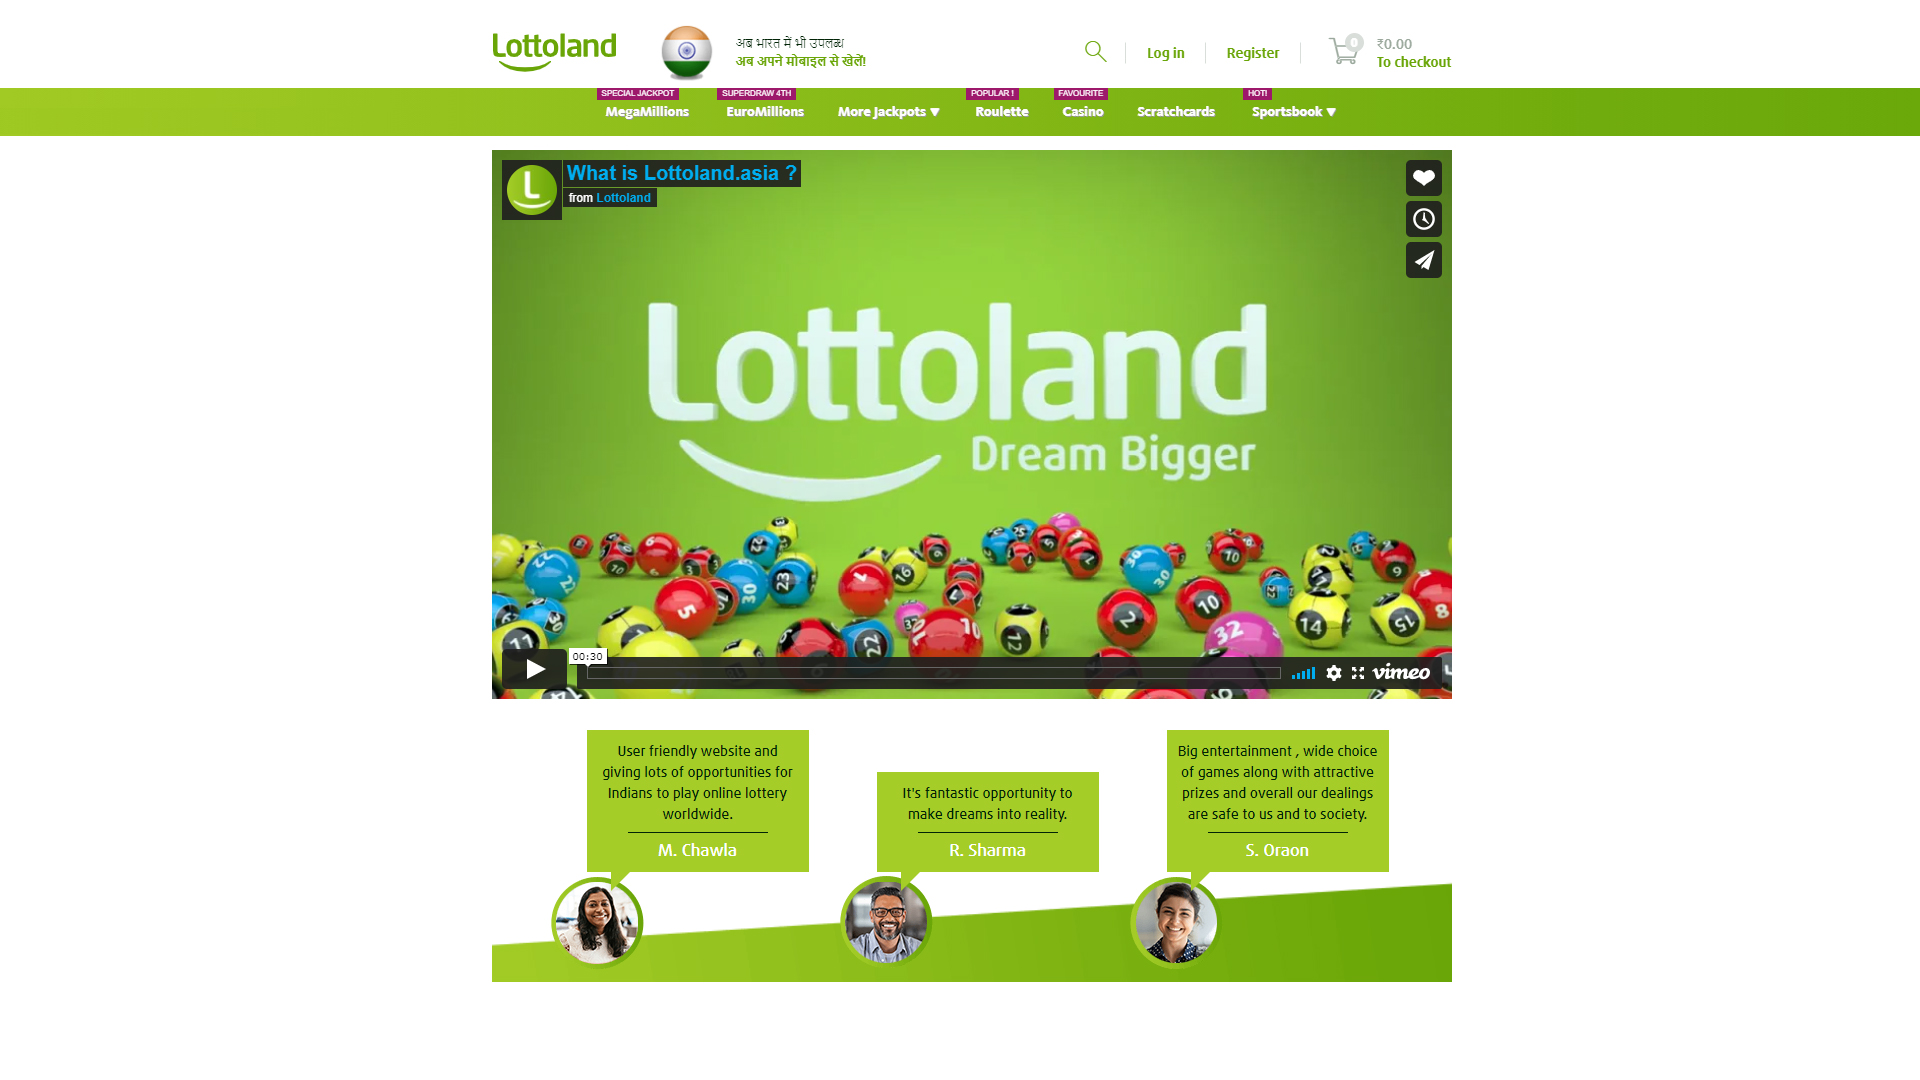 There is a special service Lottoland Asia for users from India.